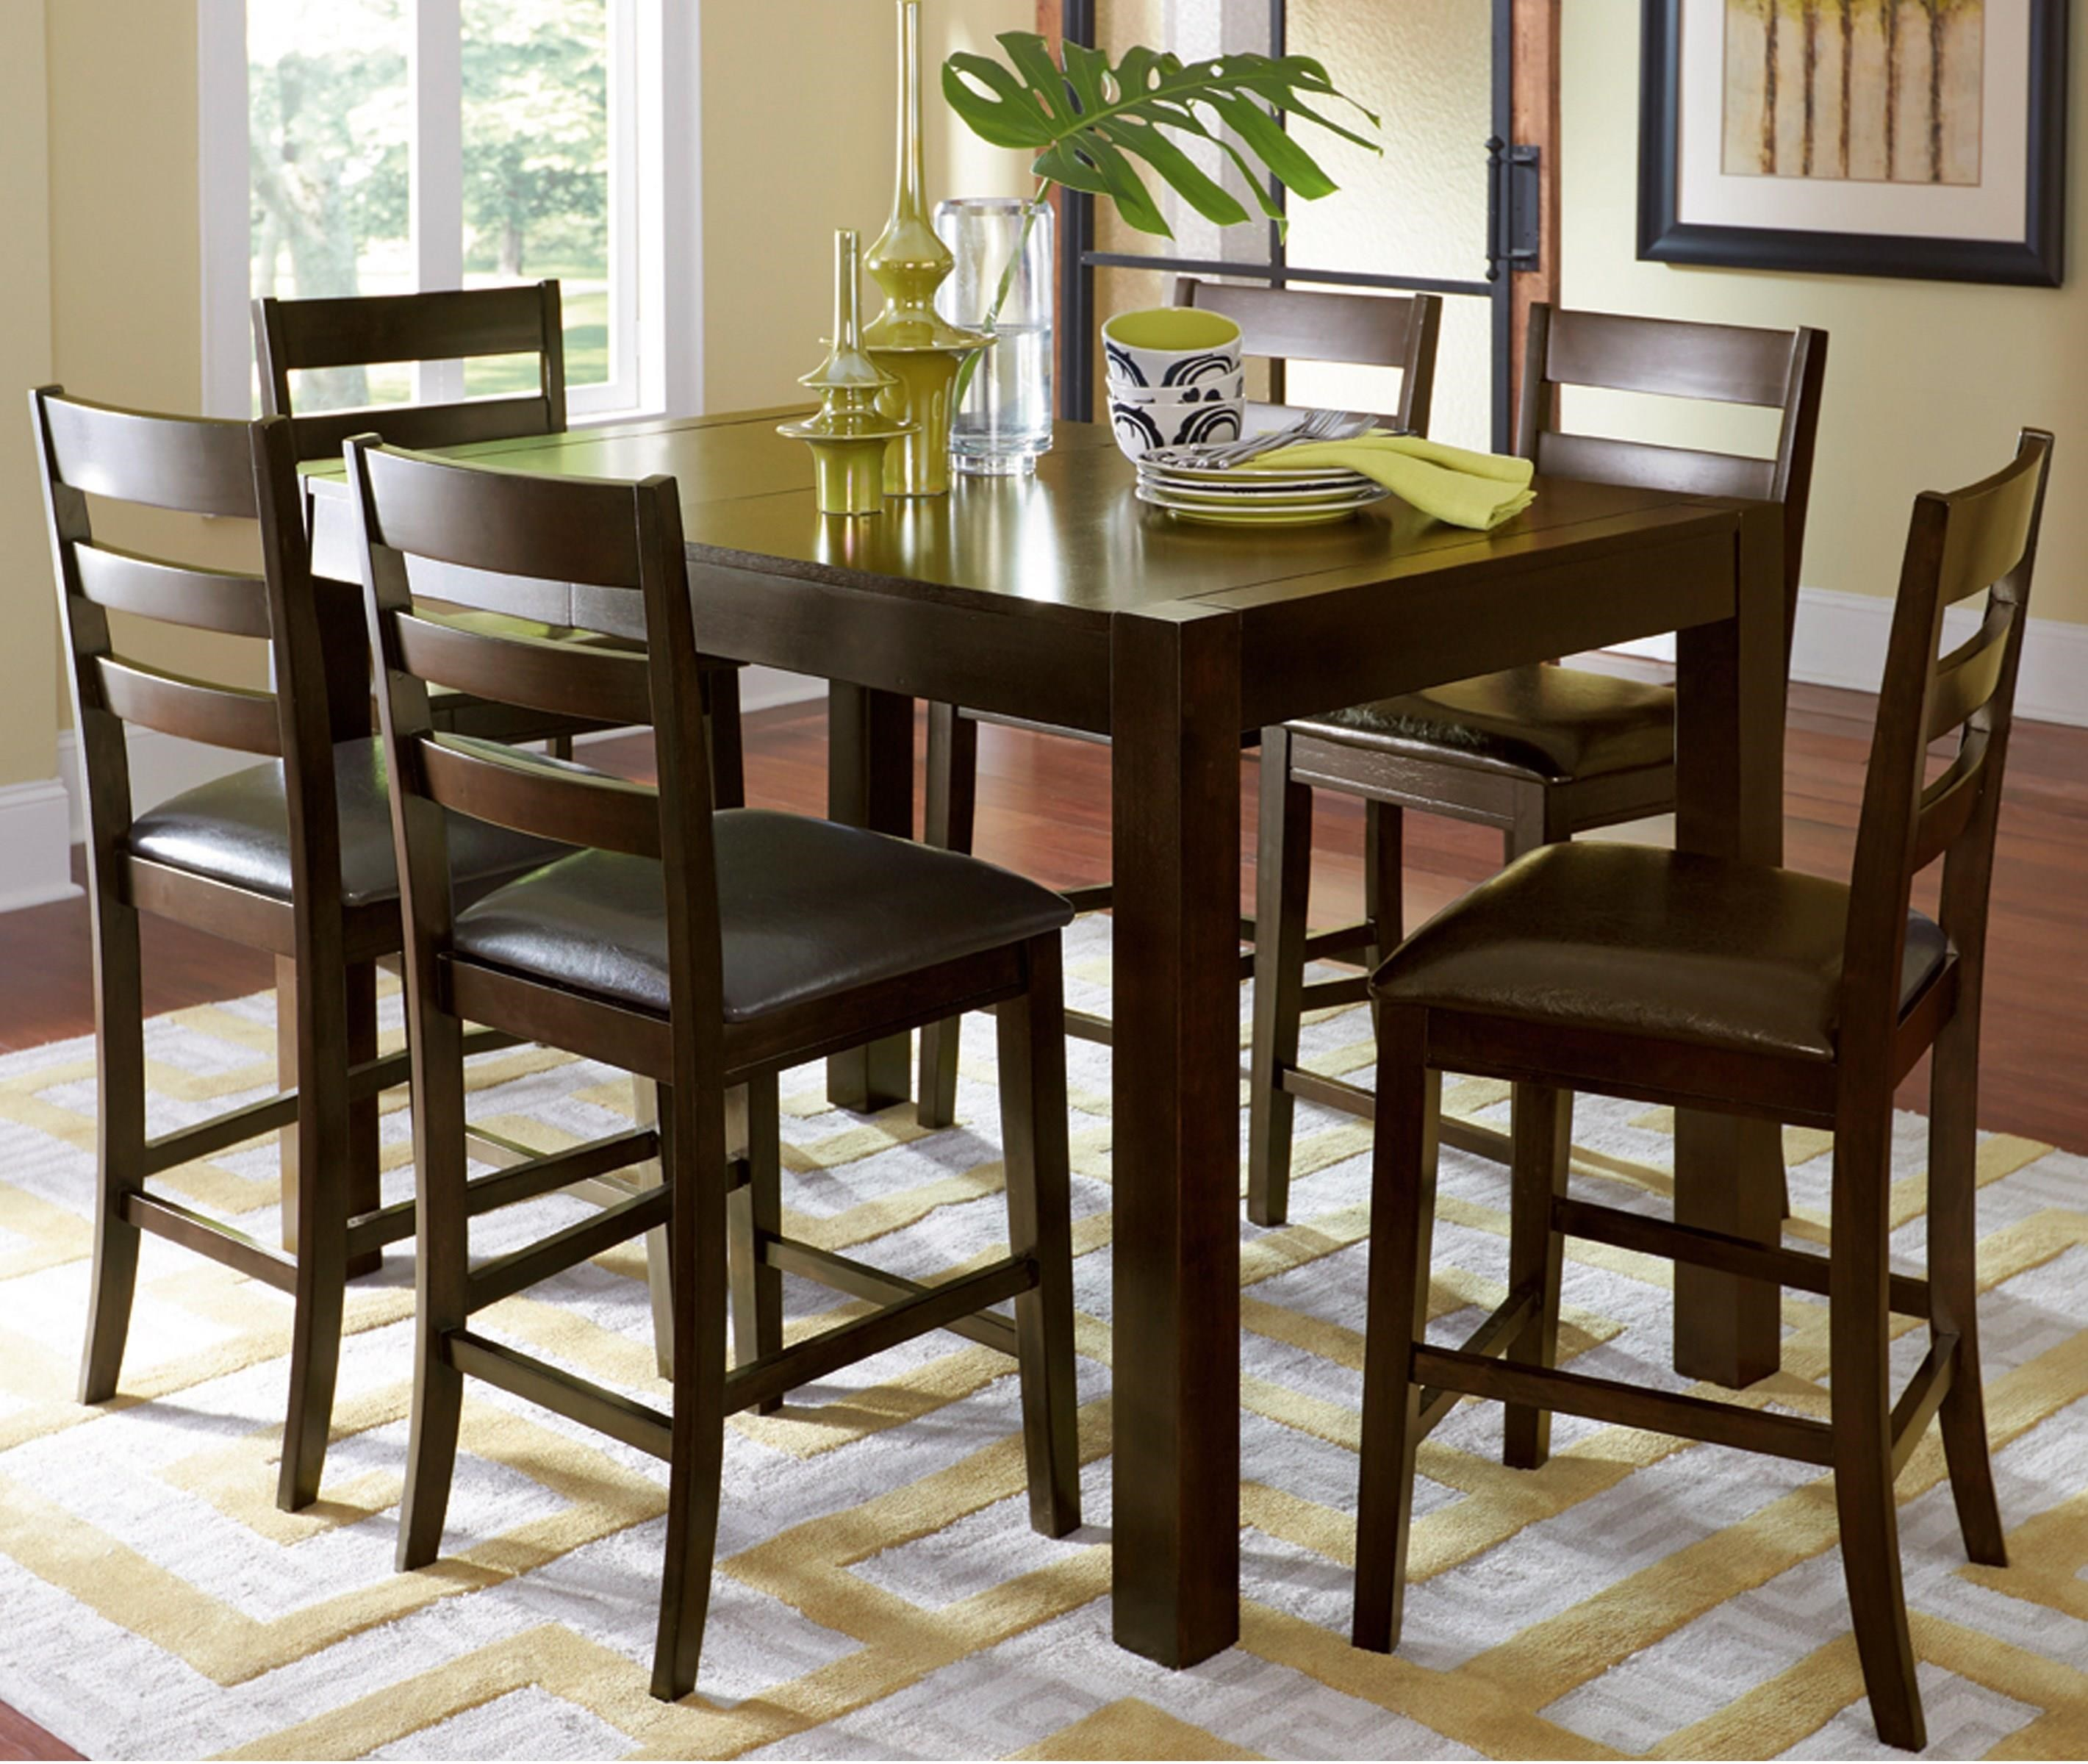 Progressive Furniture Amini 7-Piece Butterfly Counter Table Set - Item Number: P868-12+6x63